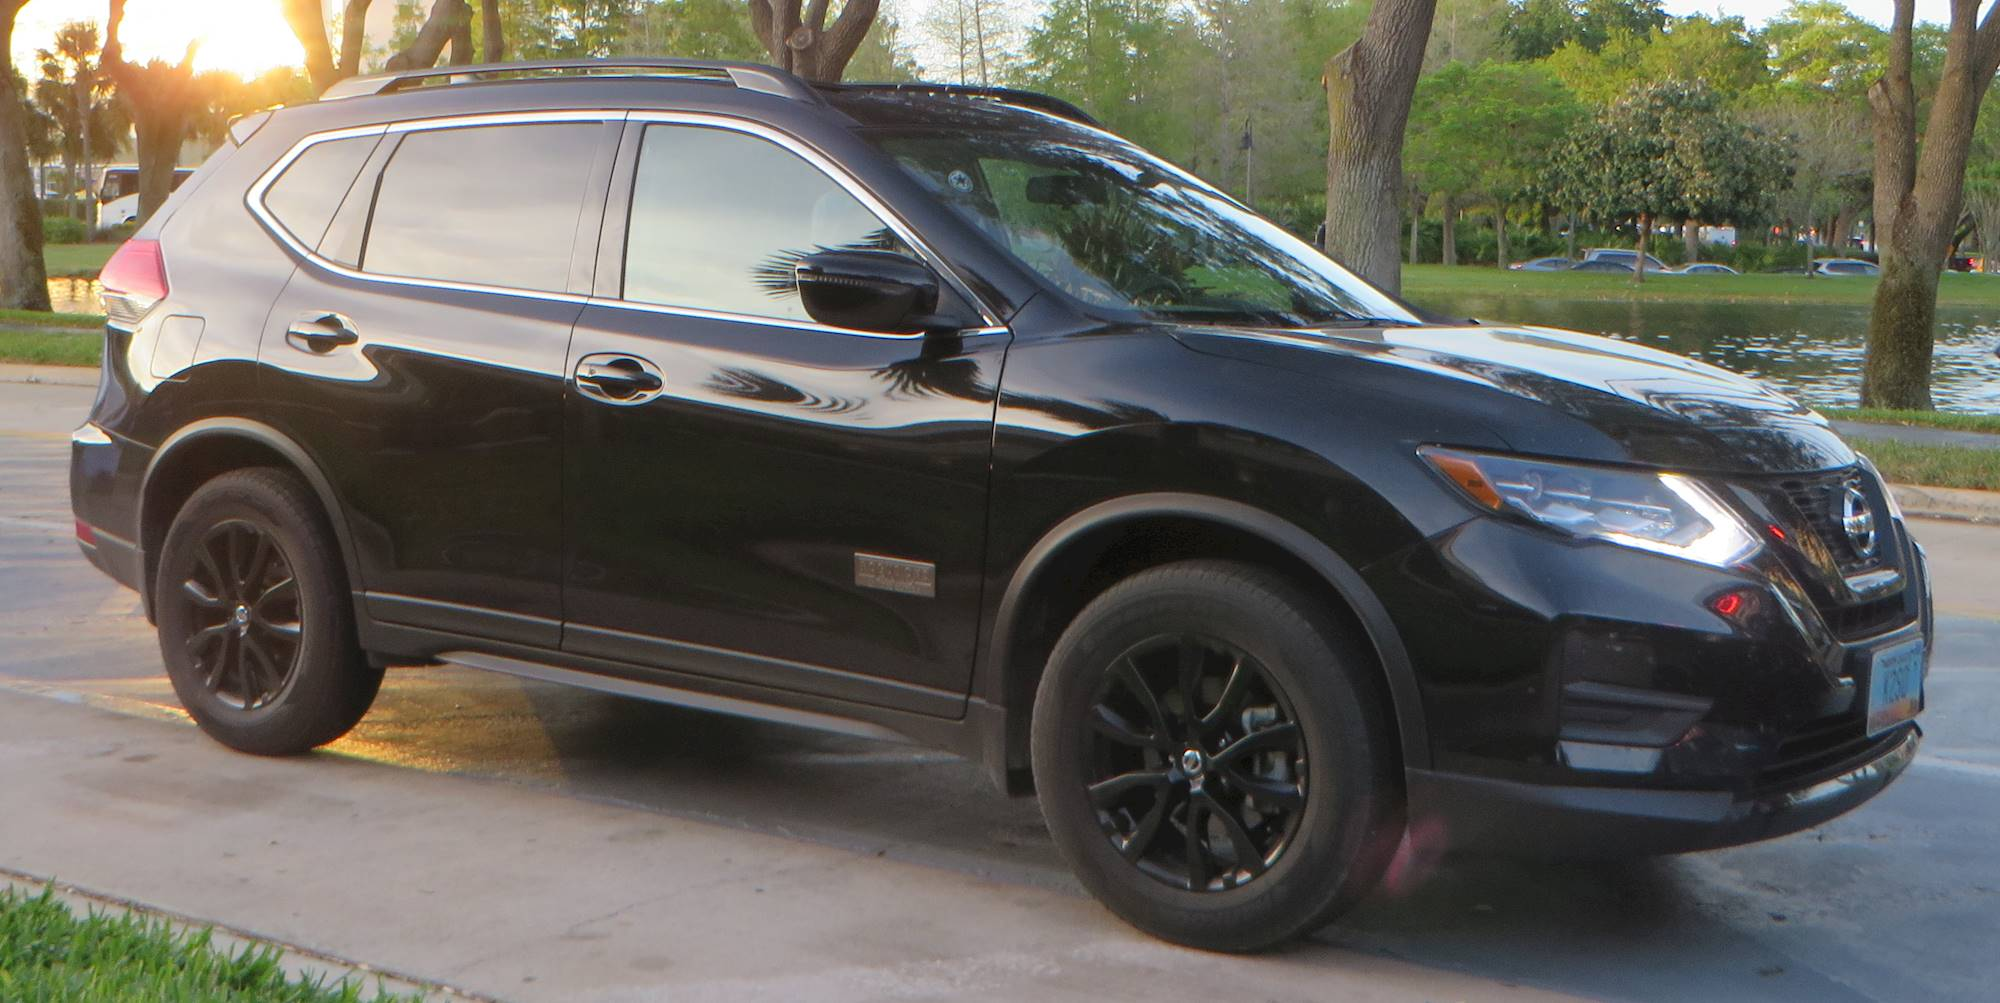 2010 nissan rogue s krom edition 4dr suv 2 5l cvt auto. Black Bedroom Furniture Sets. Home Design Ideas